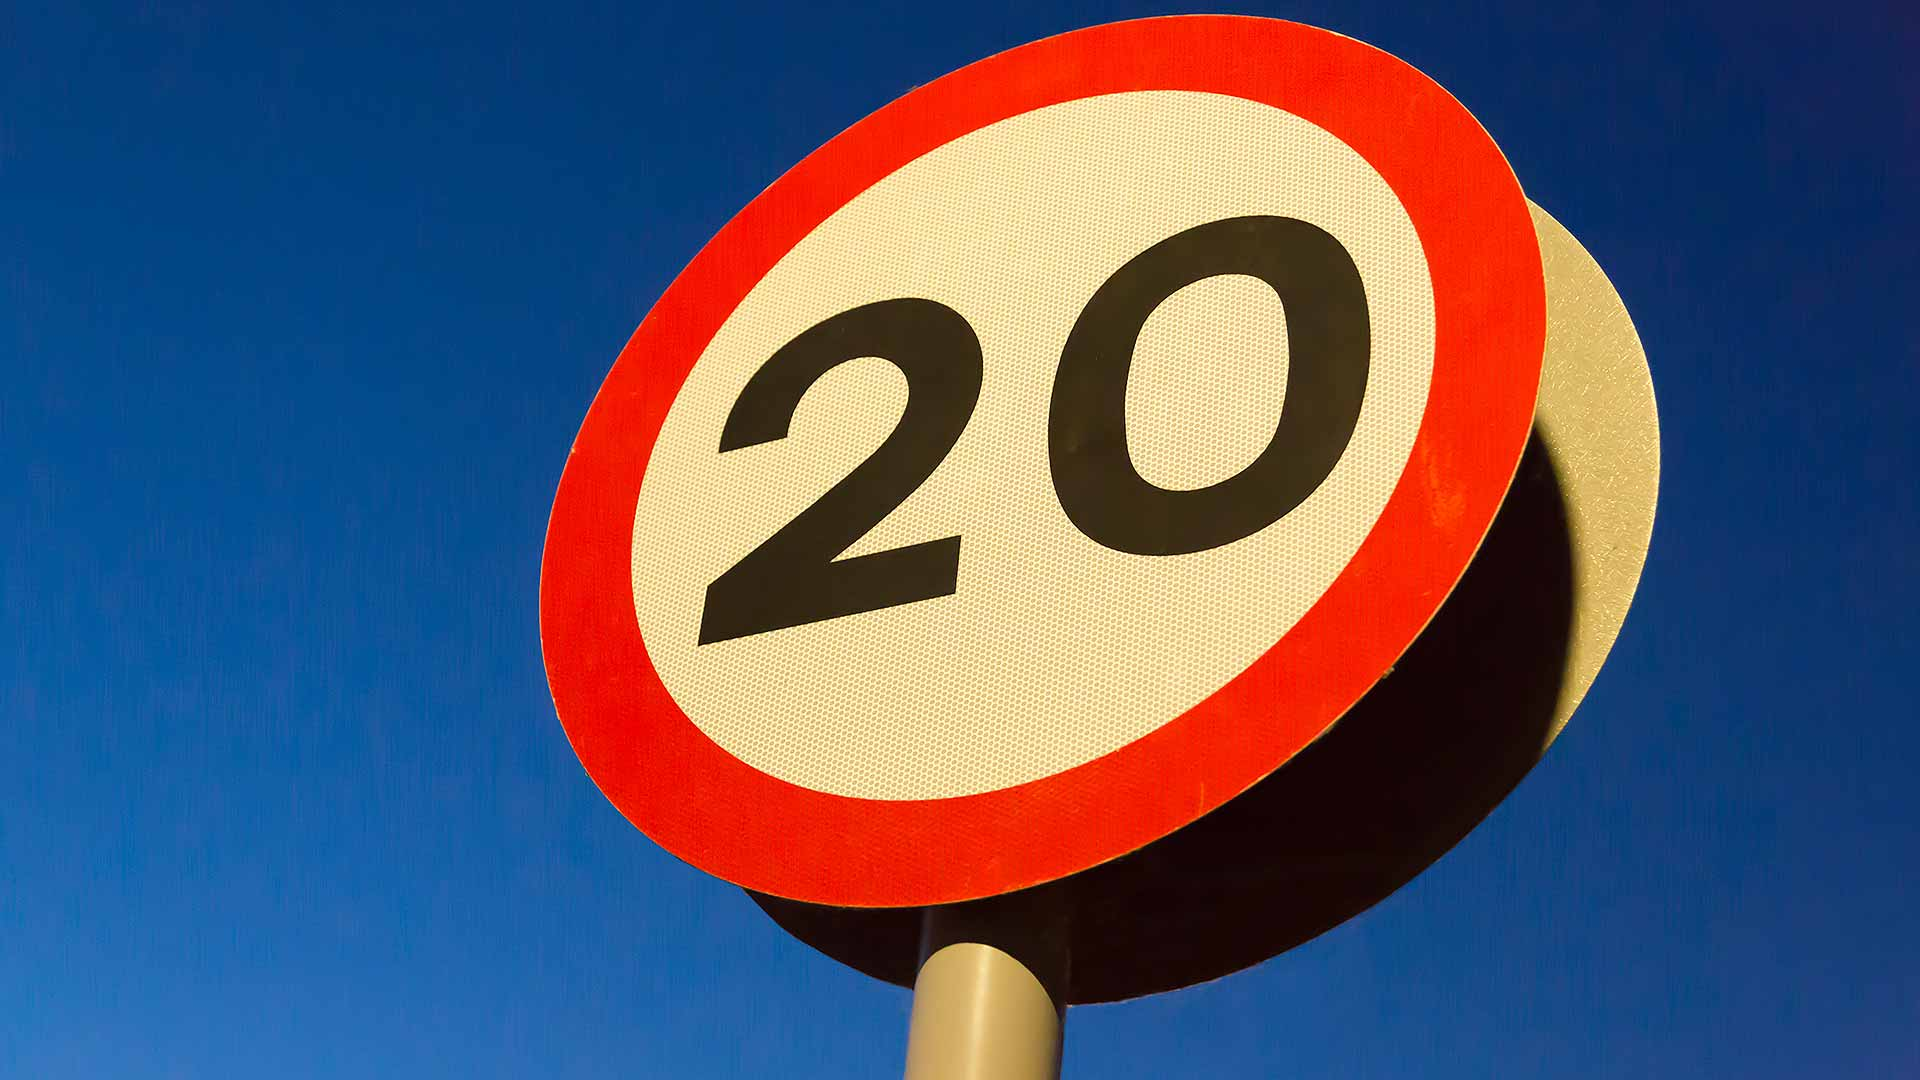 20mph speed limit road sign